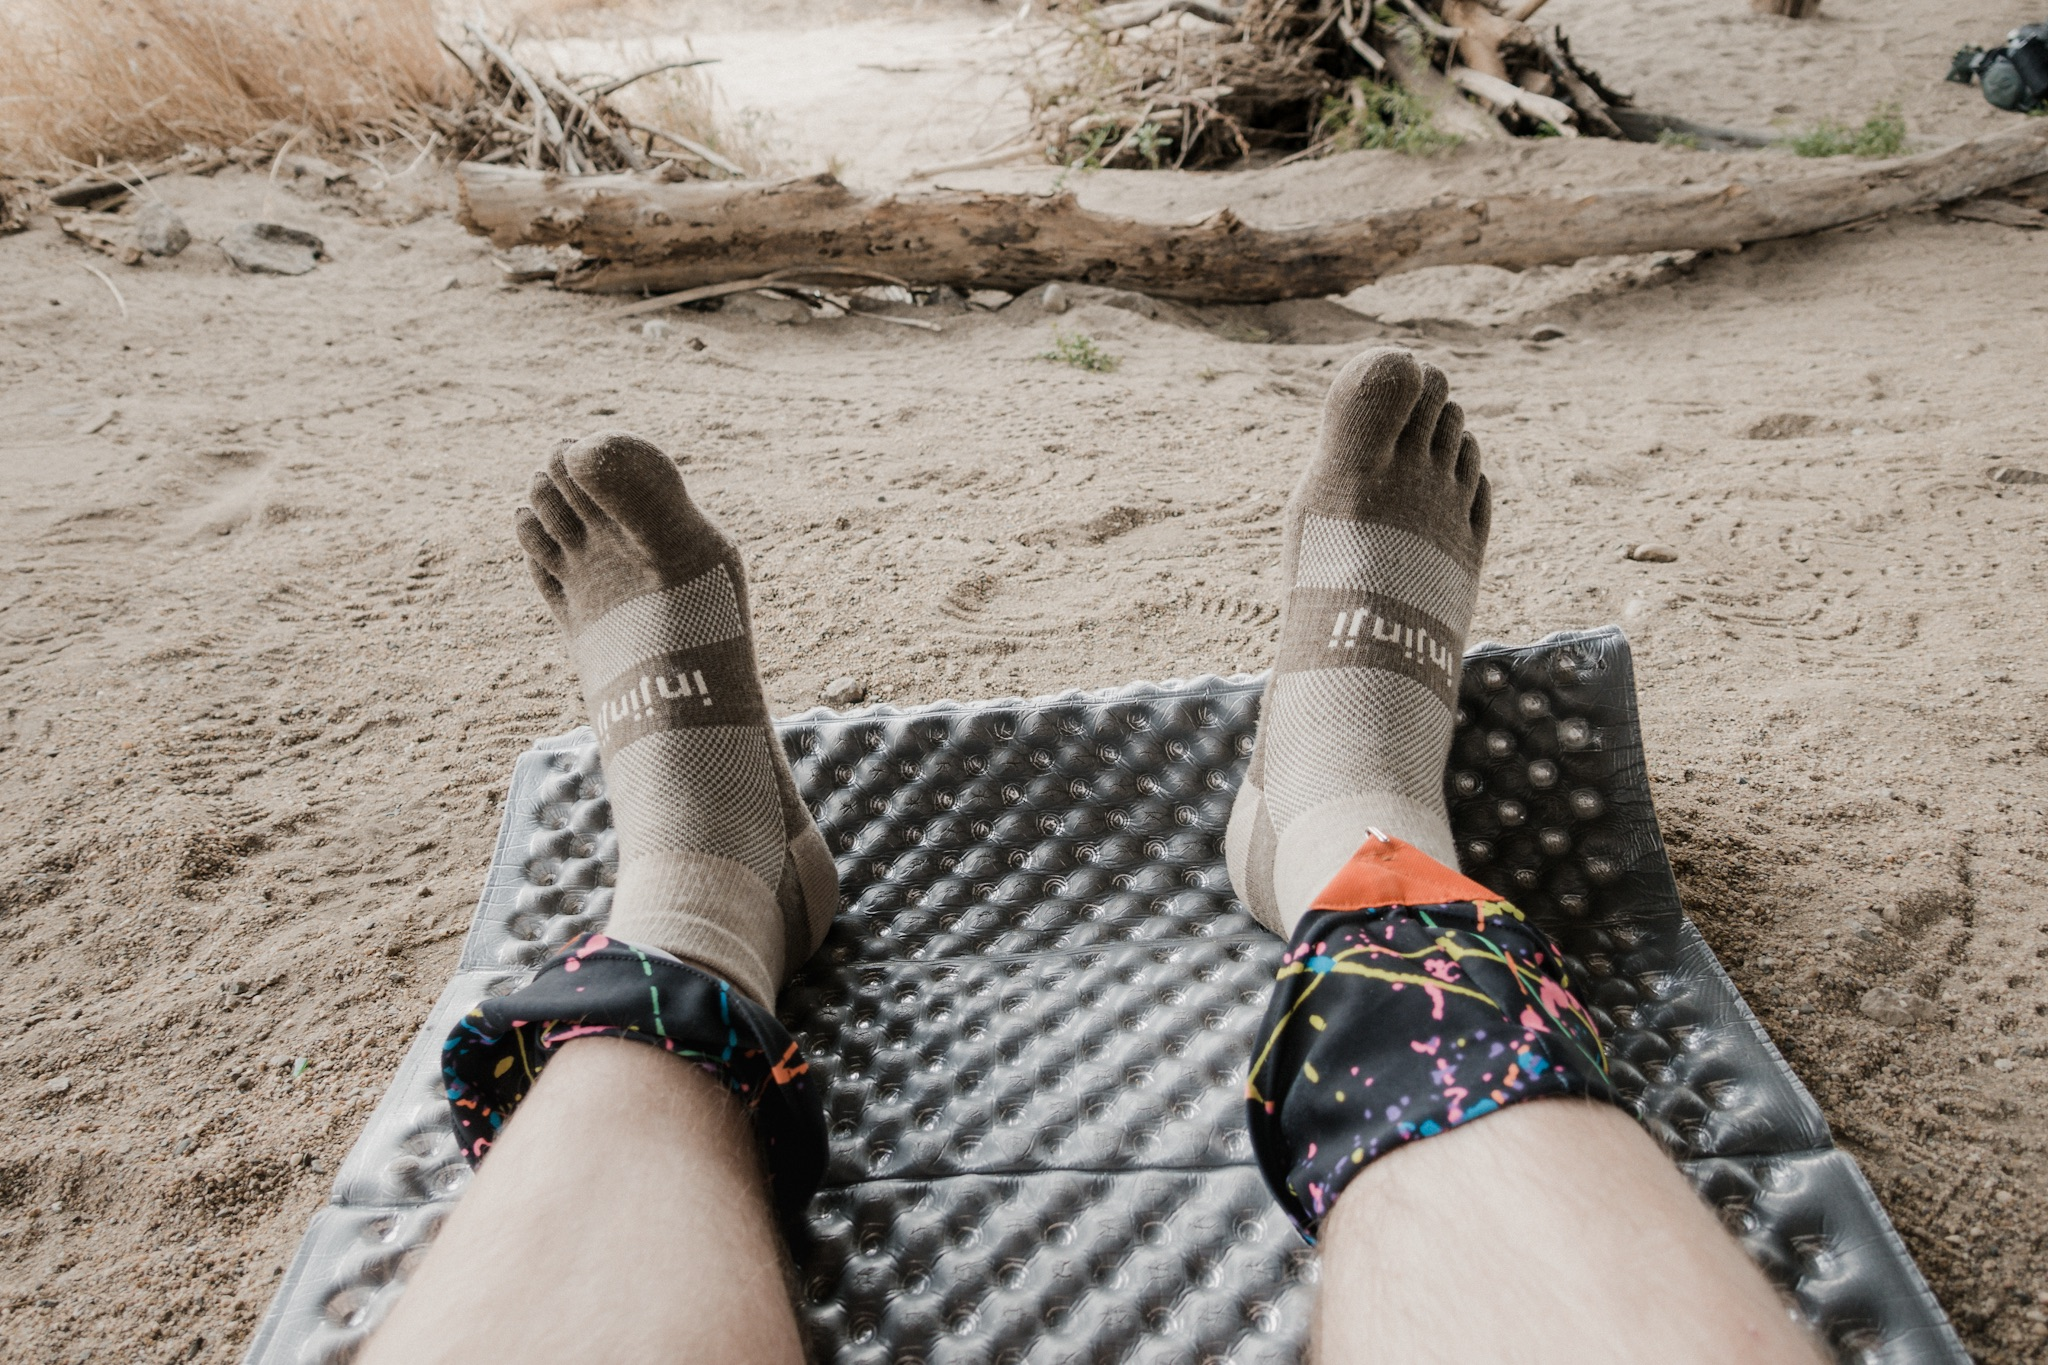 Airing out my new Injinji socks.